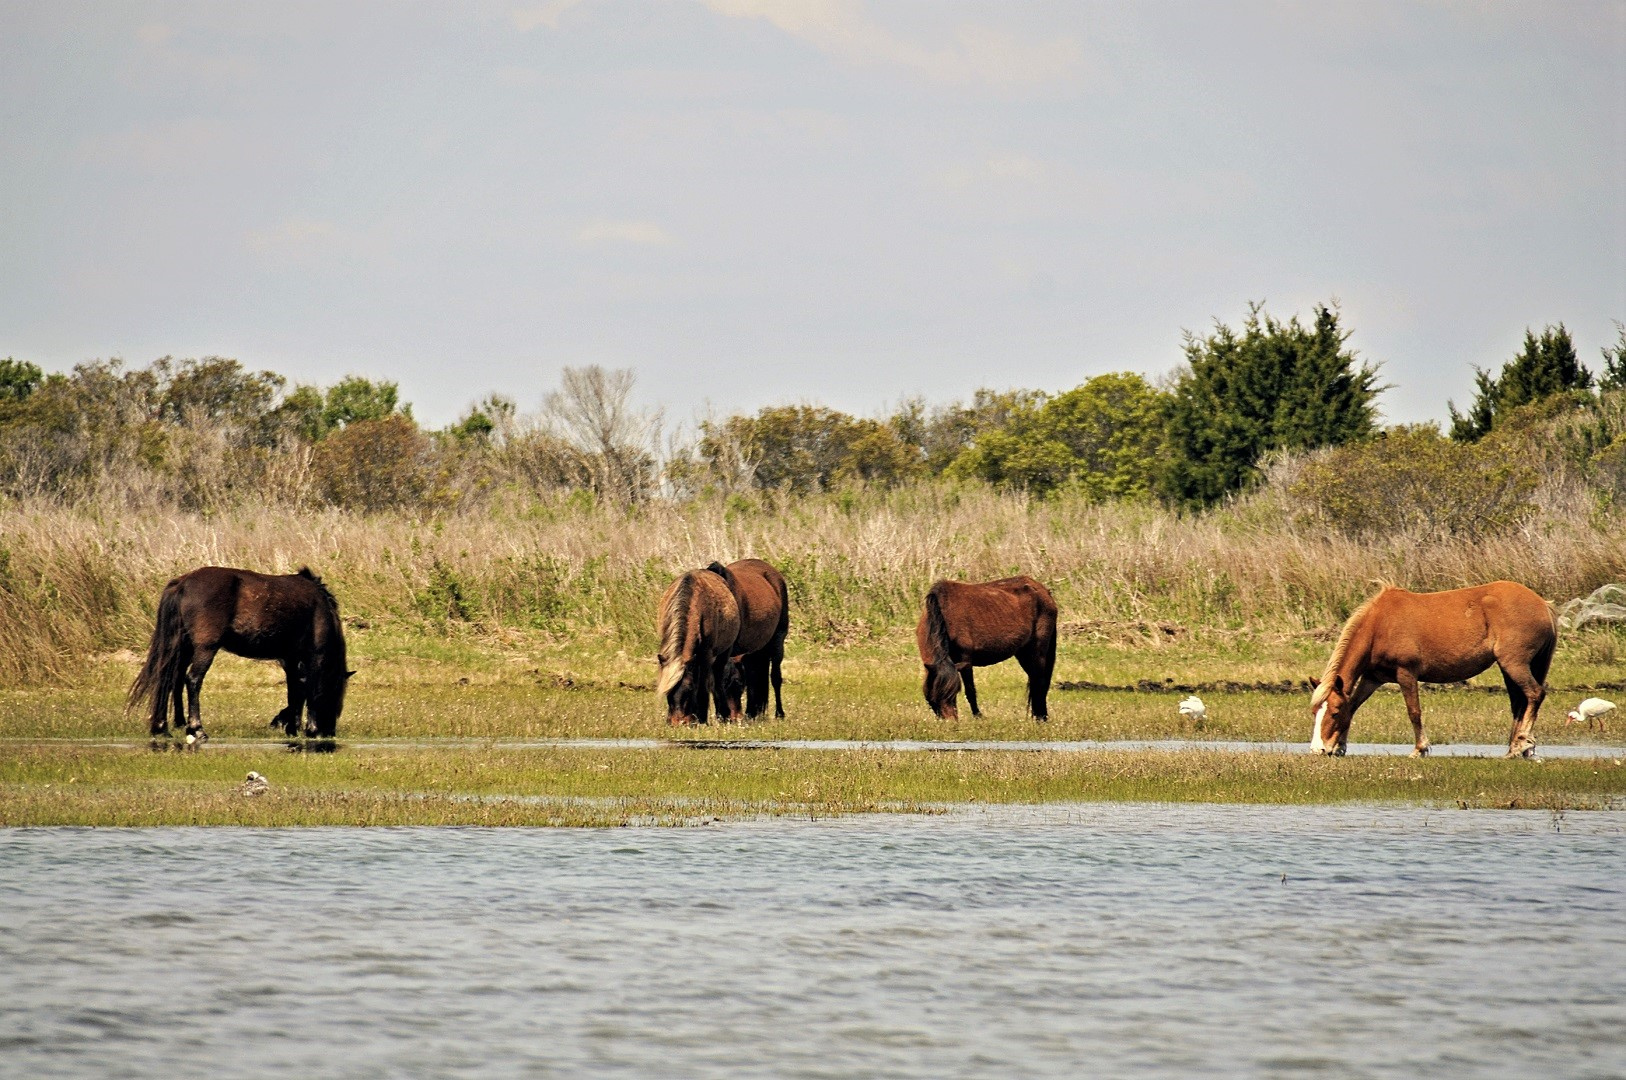 North Carolina's Famous Wild Horses Emerge from Hurricane Florence Unscathed